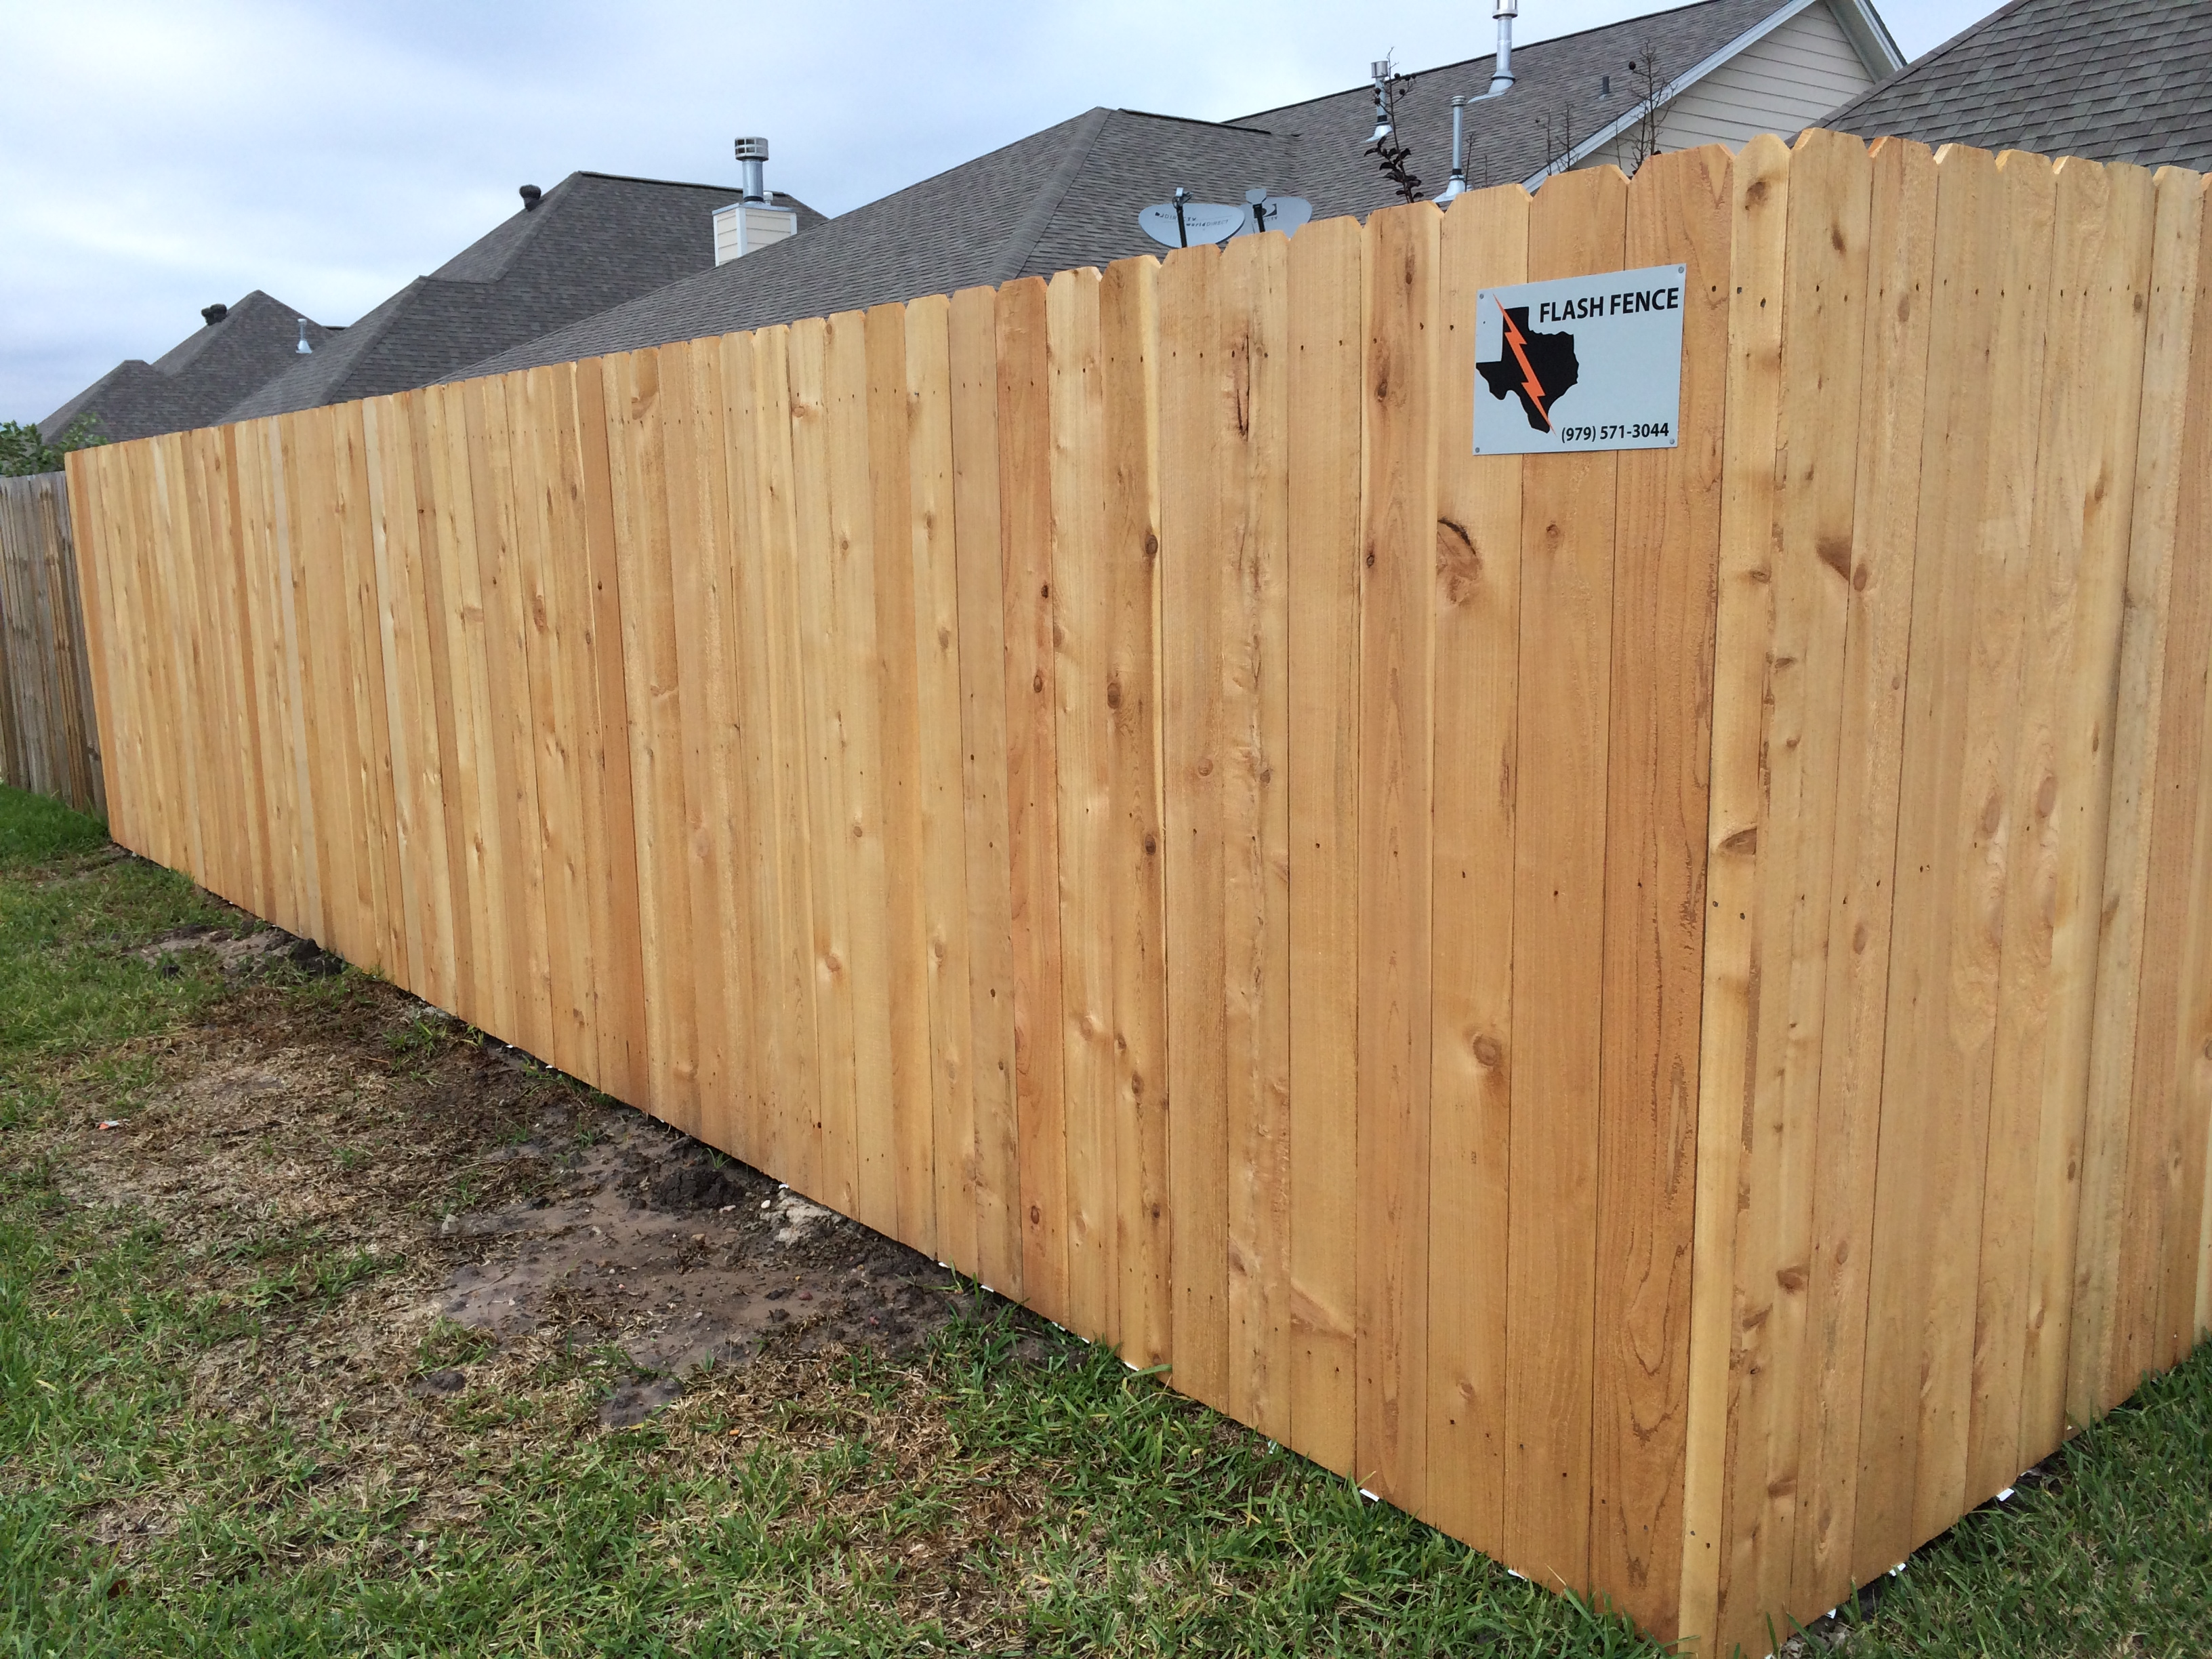 Gallery Flash Fence Of College Station